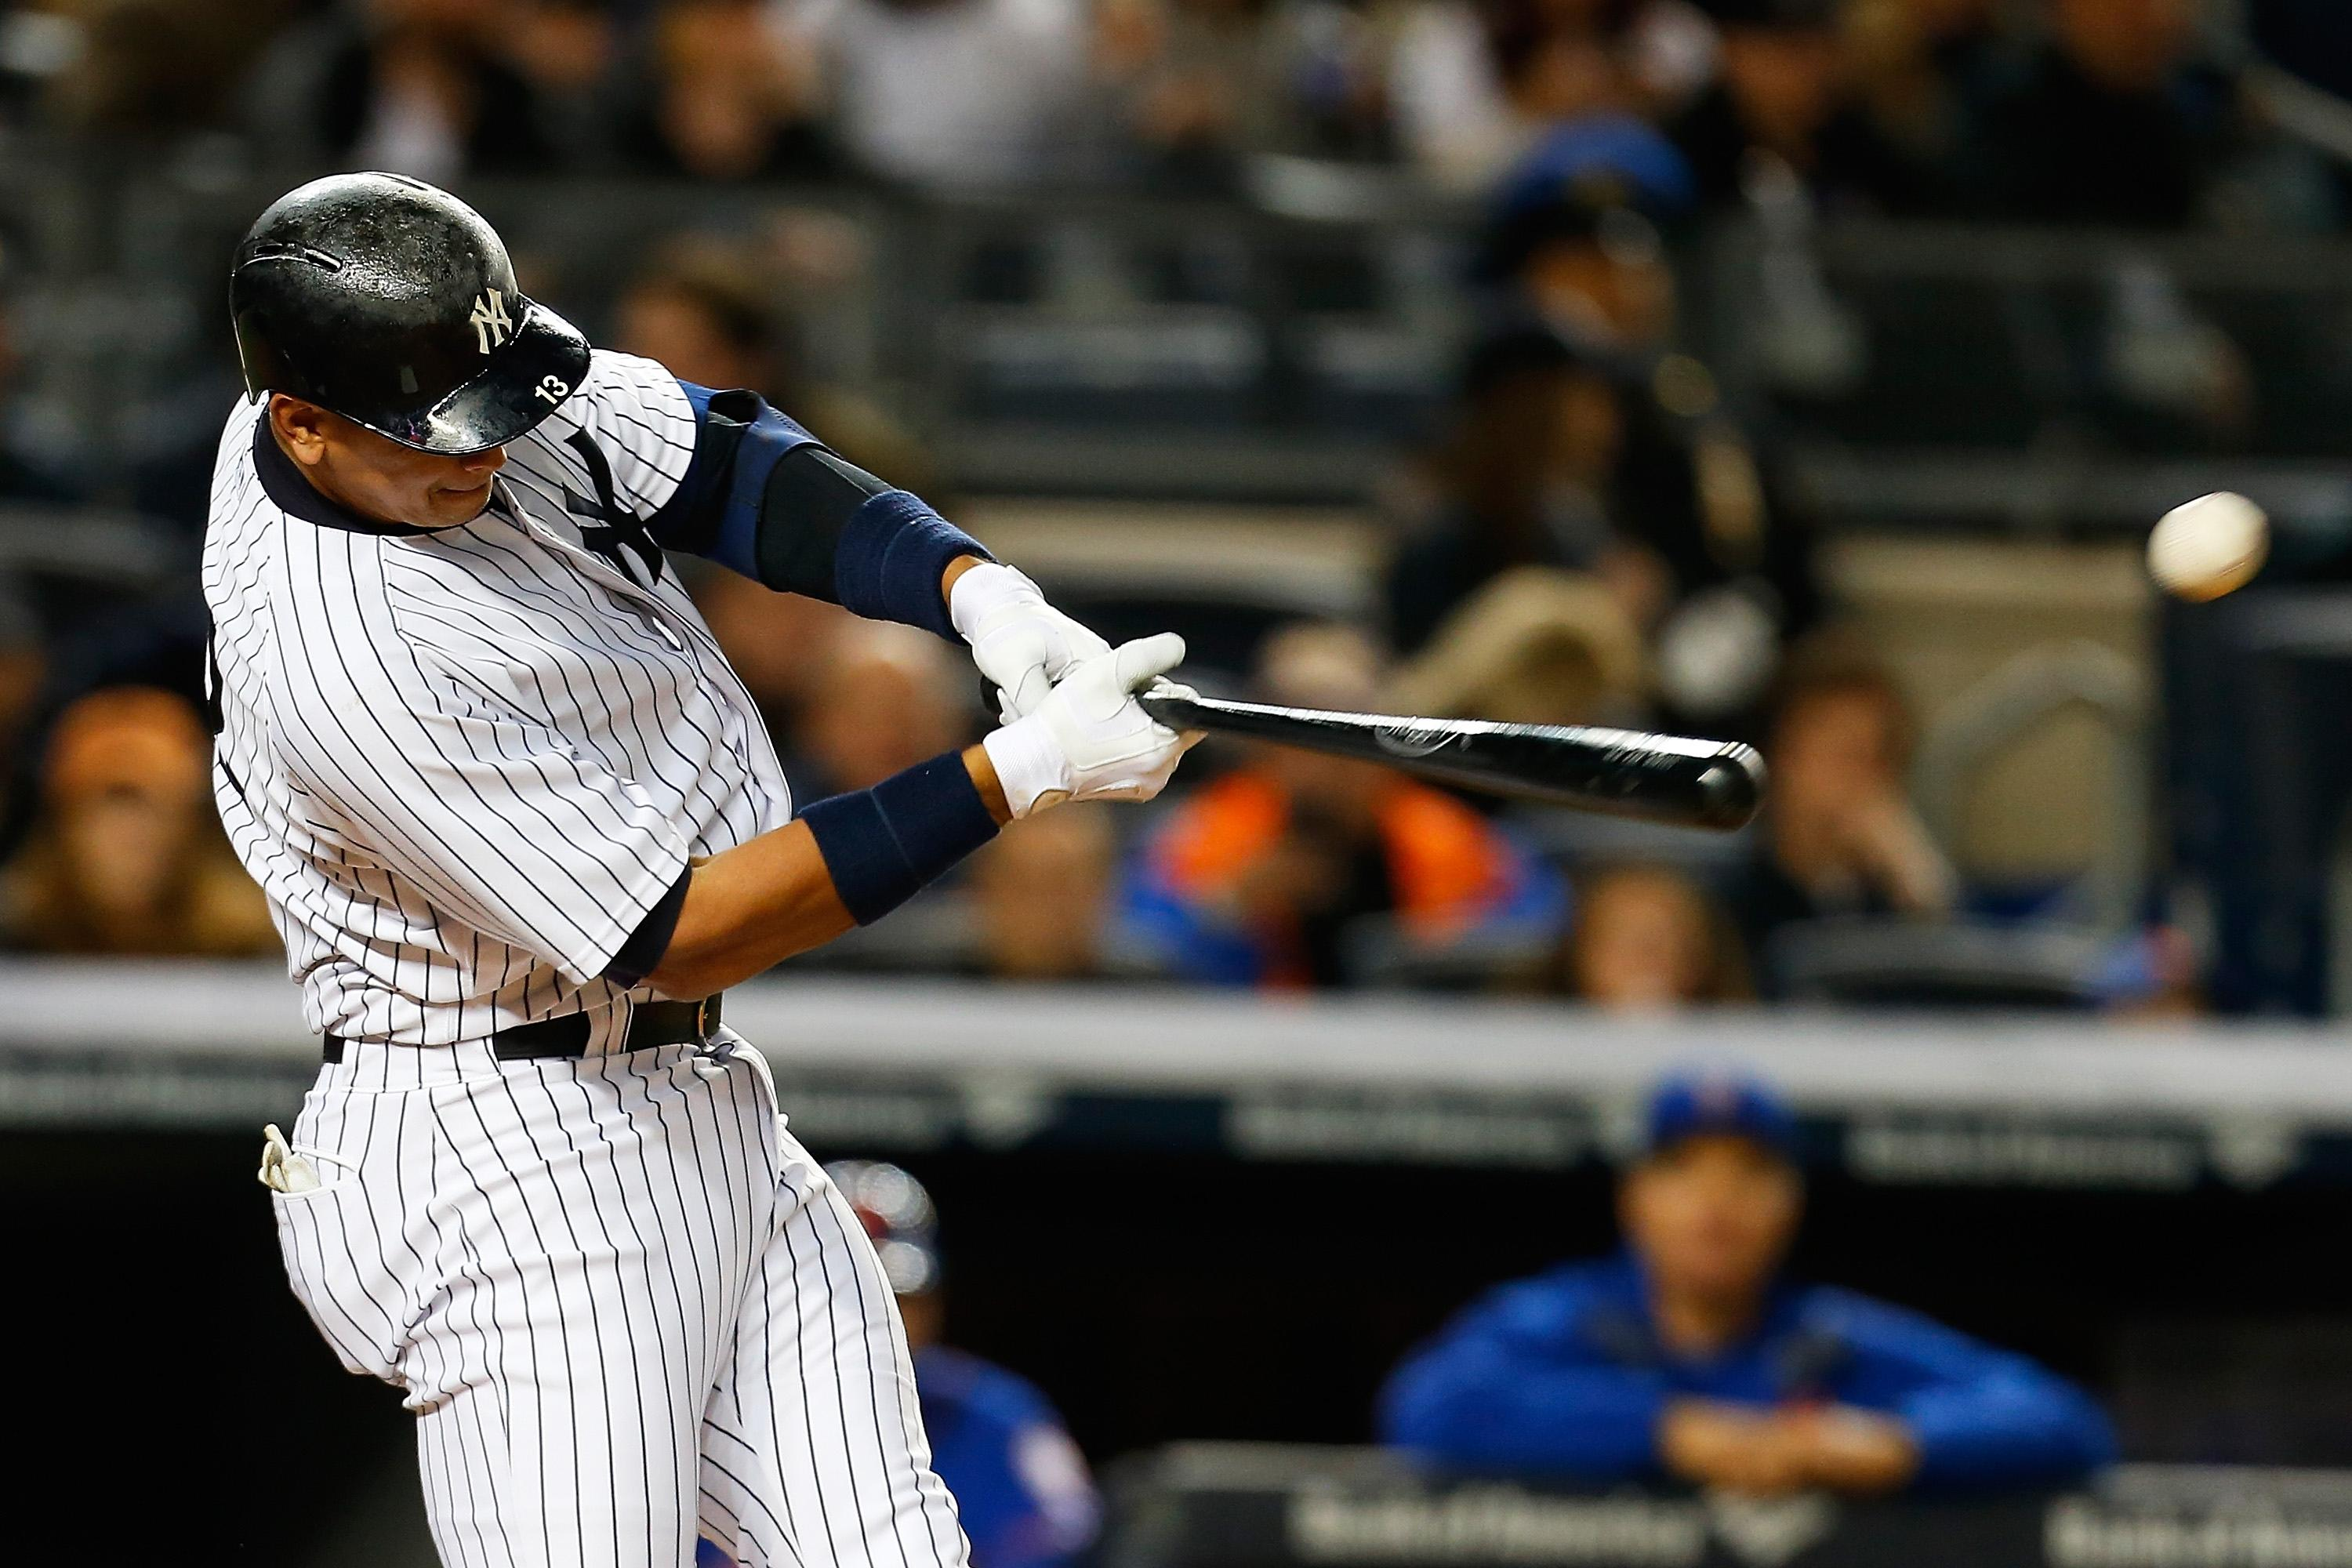 Fan takes out ad asking for A-Rod's 660th home run to have an asterisk